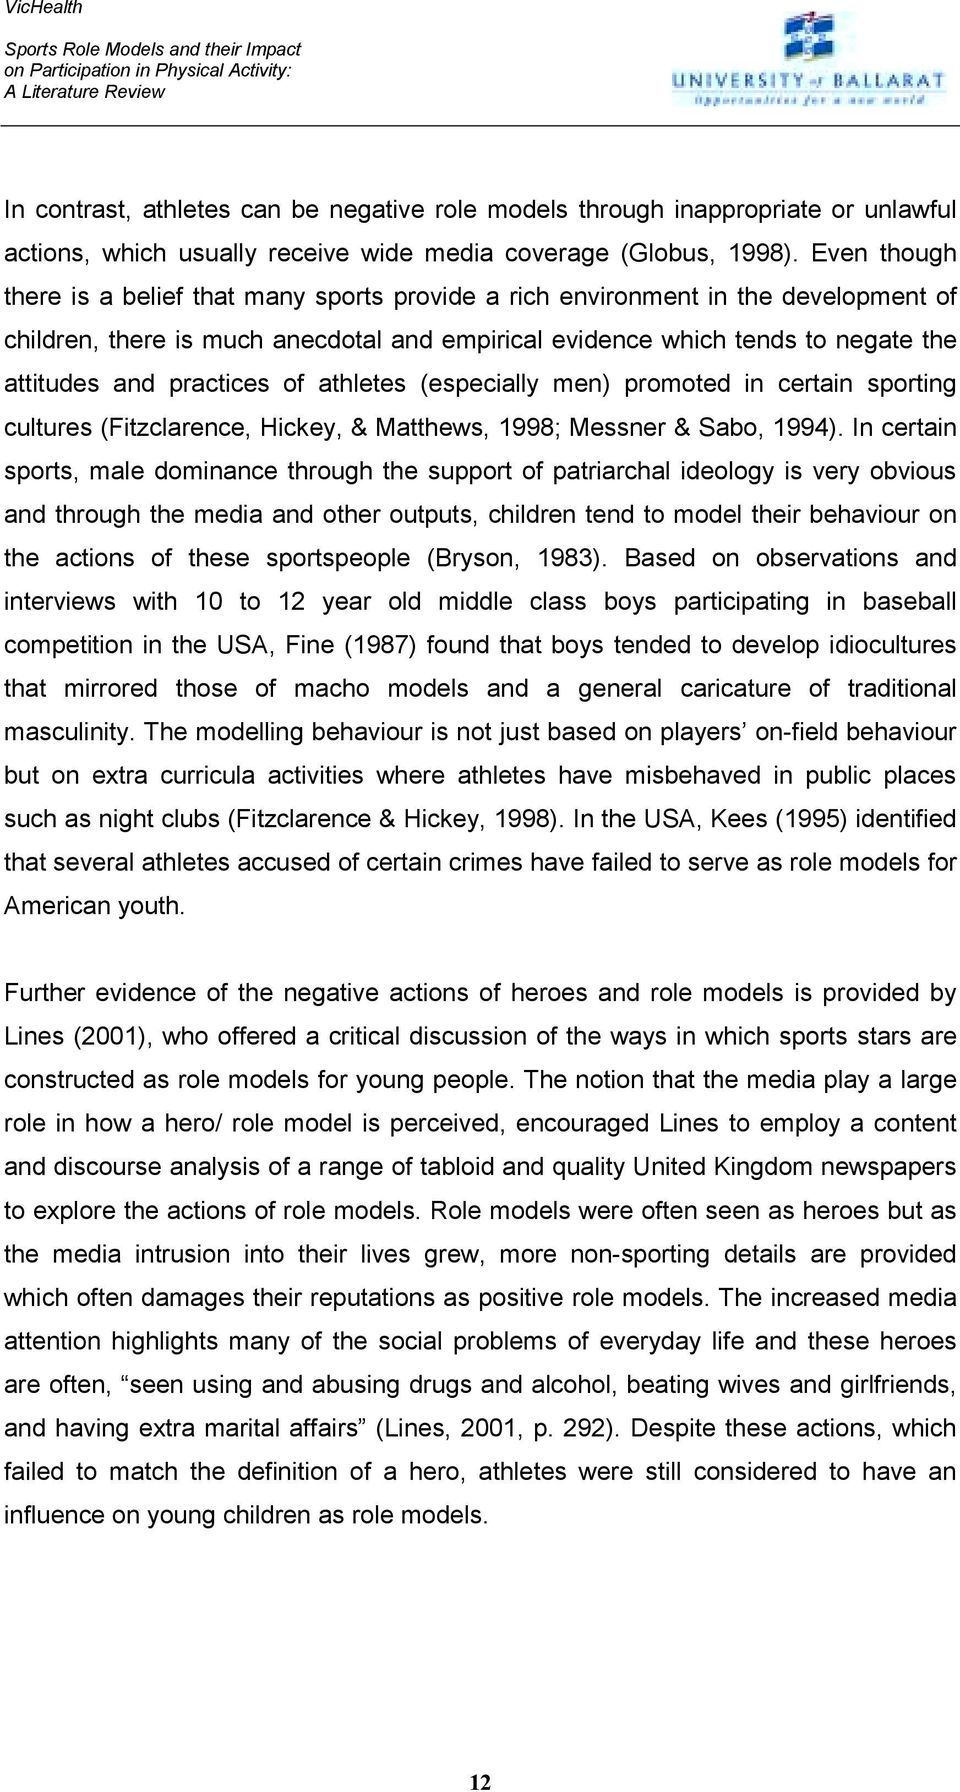 practices of athletes (especially men) promoted in certain sporting cultures (Fitzclarence, Hickey, & Matthews, 1998; Messner & Sabo, 1994).